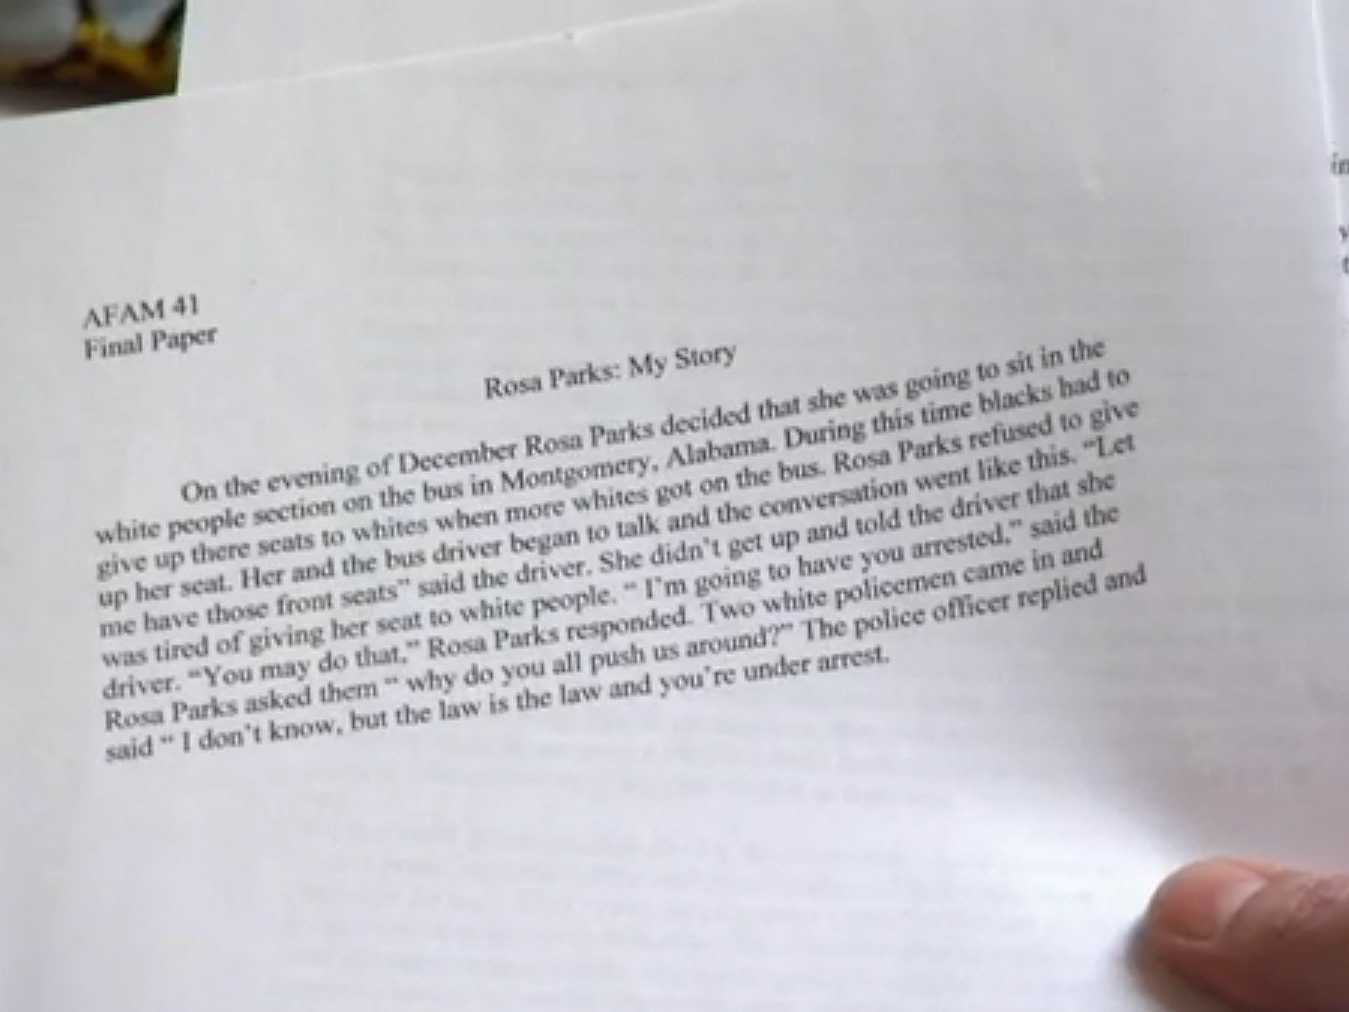 021 Essay Example One Paragraph Topics This Ridiculous By Unc Athlete Got An Minus Magnificent